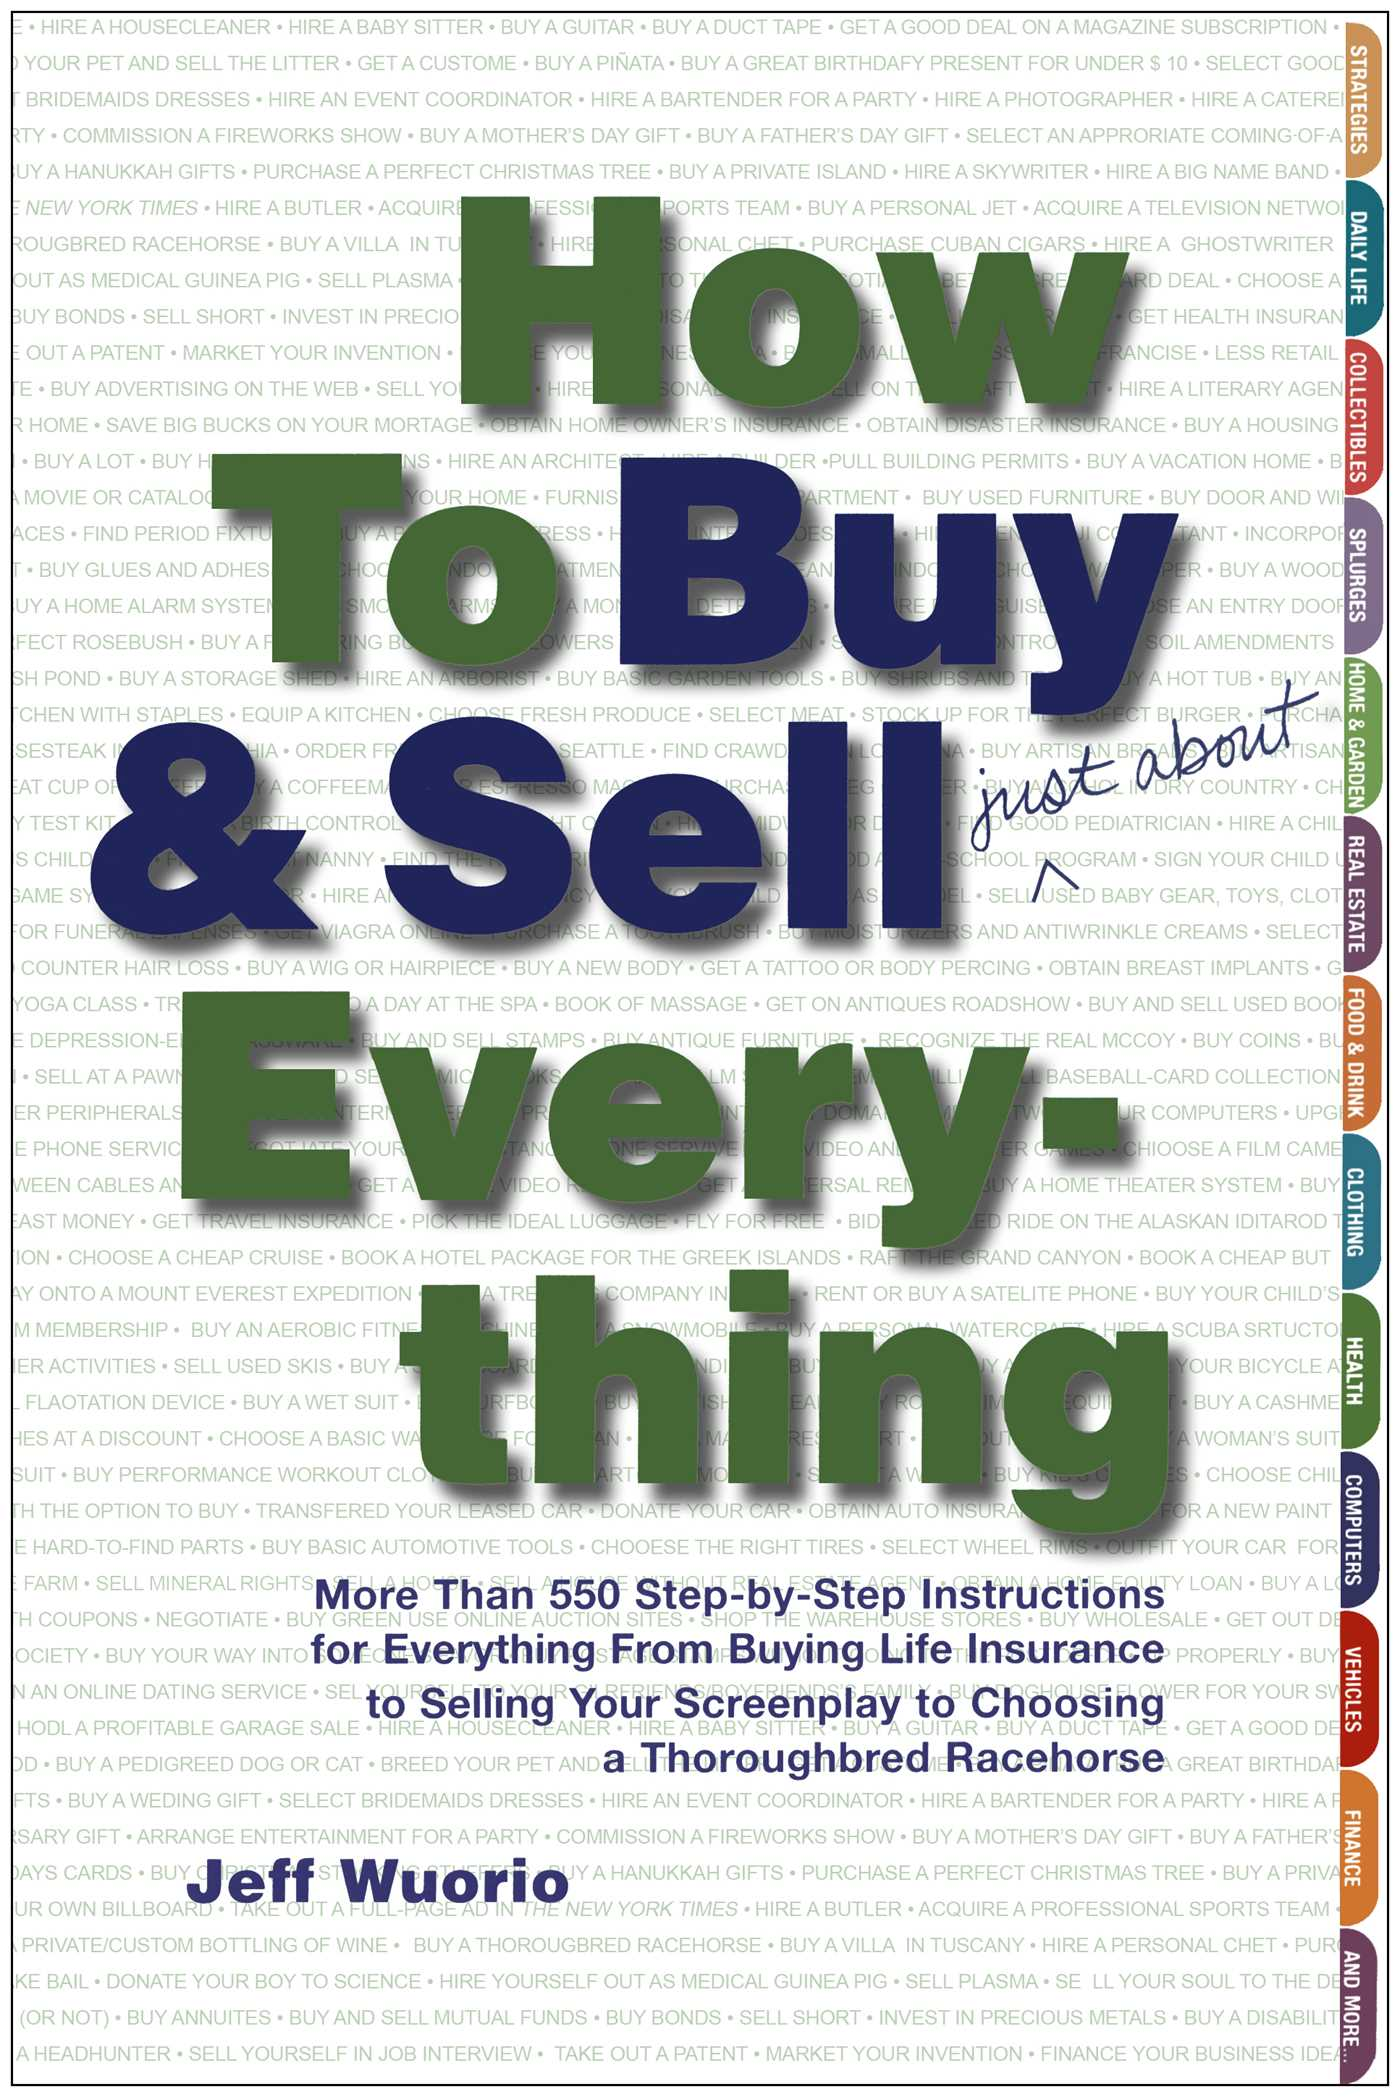 How-to-buy-and-sell-just-about-everything-9781451603927_hr